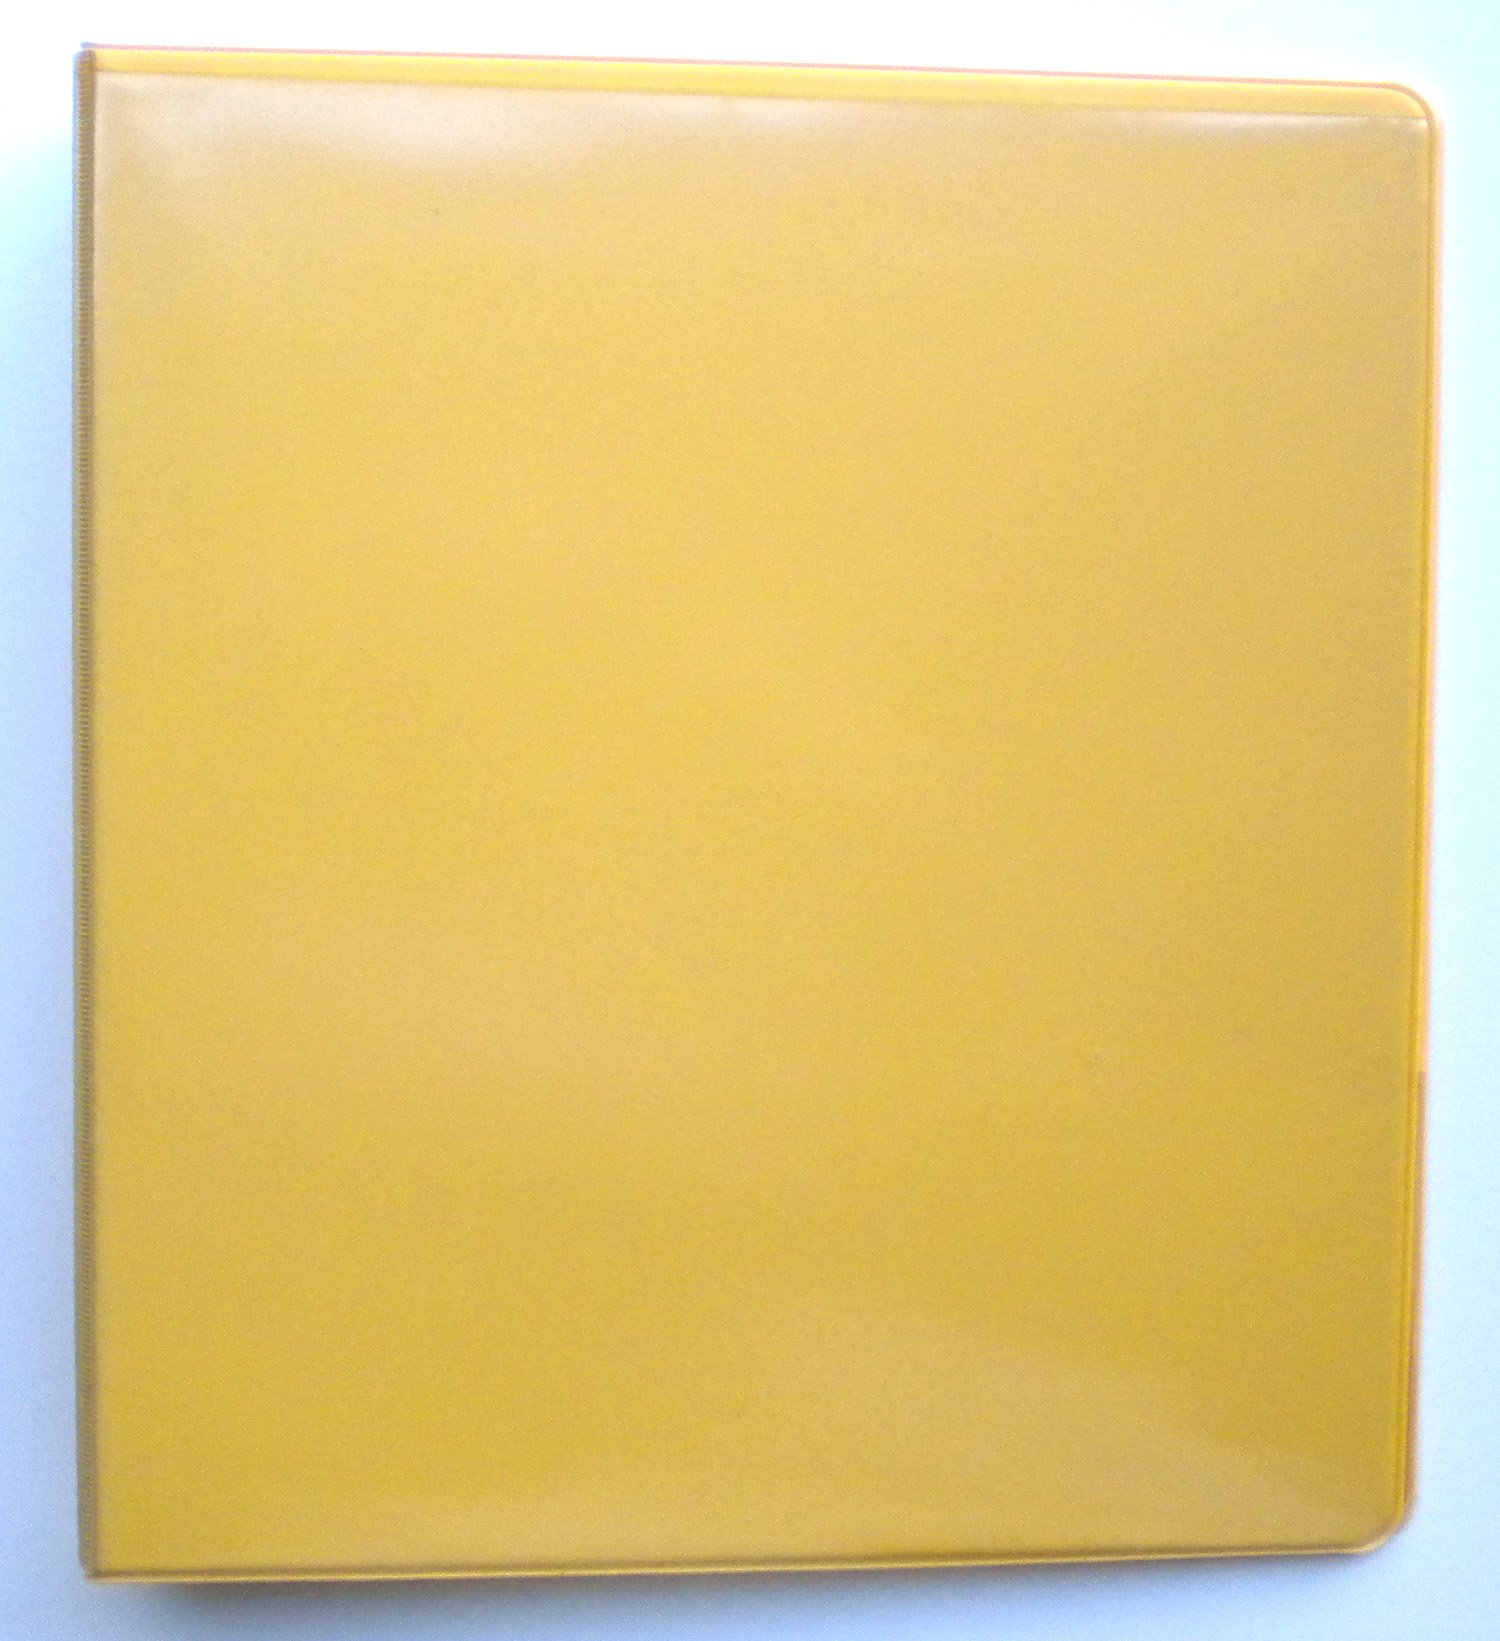 YELLOW 3 RING 1'' VIEW BINDER 8.5 X 11 - BOX OF 12 by Value Binder